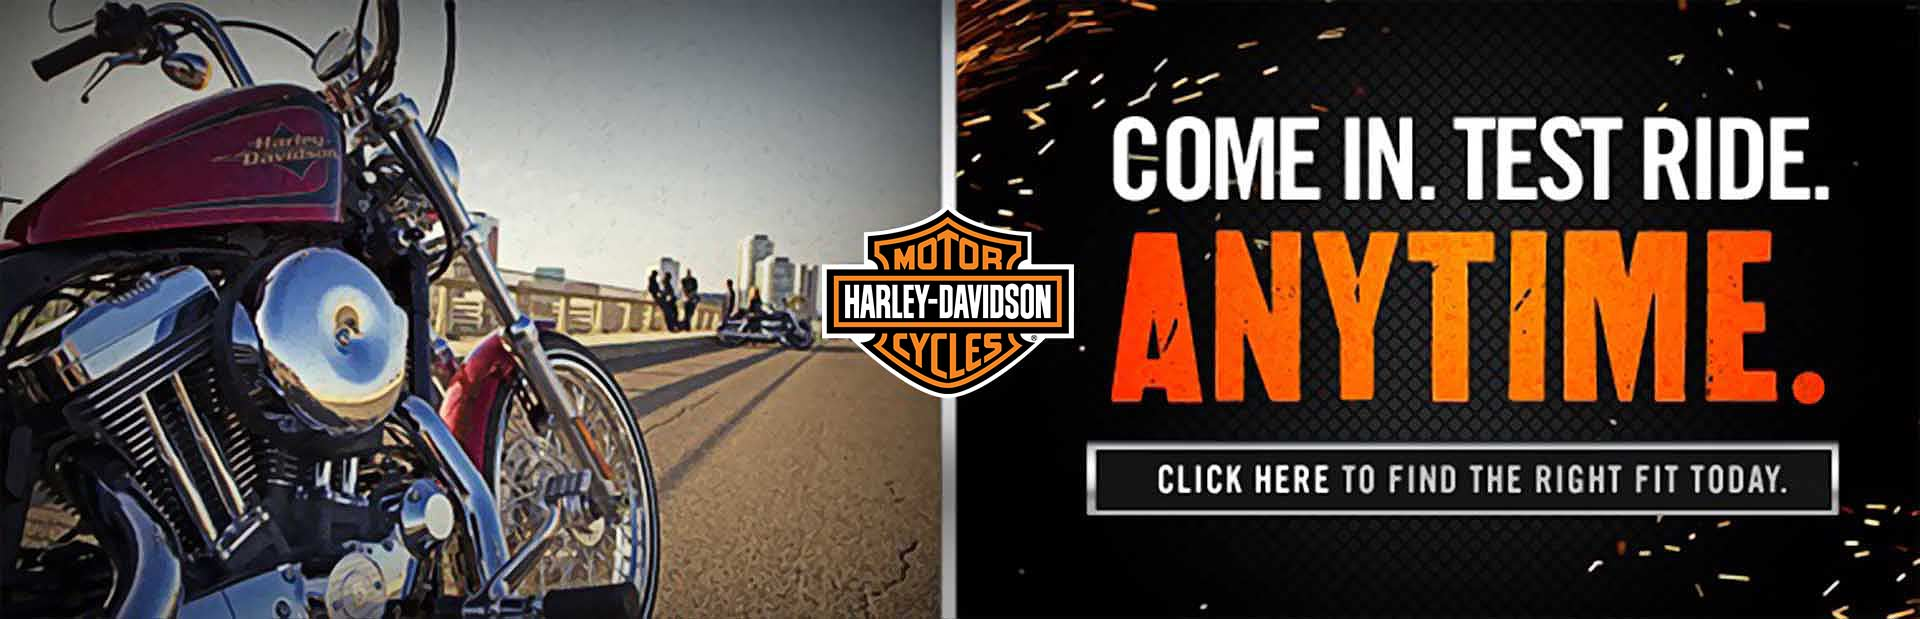 Come in for a test ride anytime. Click here to find the right Harley-Davdison® today.